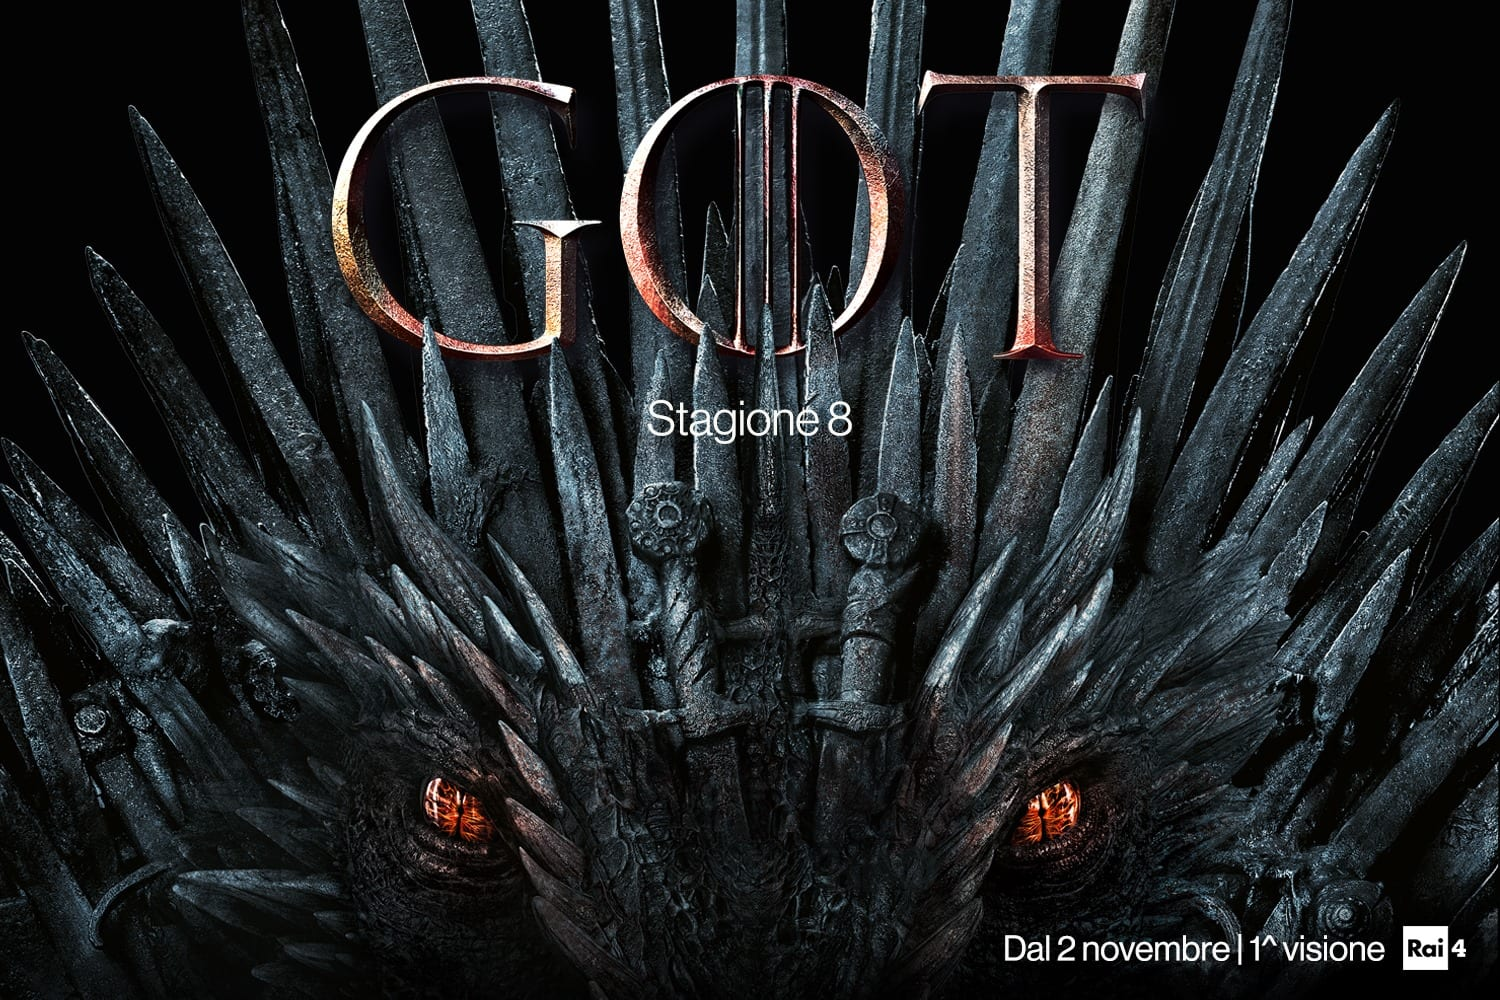 Game of thrones arriva su Rai 4